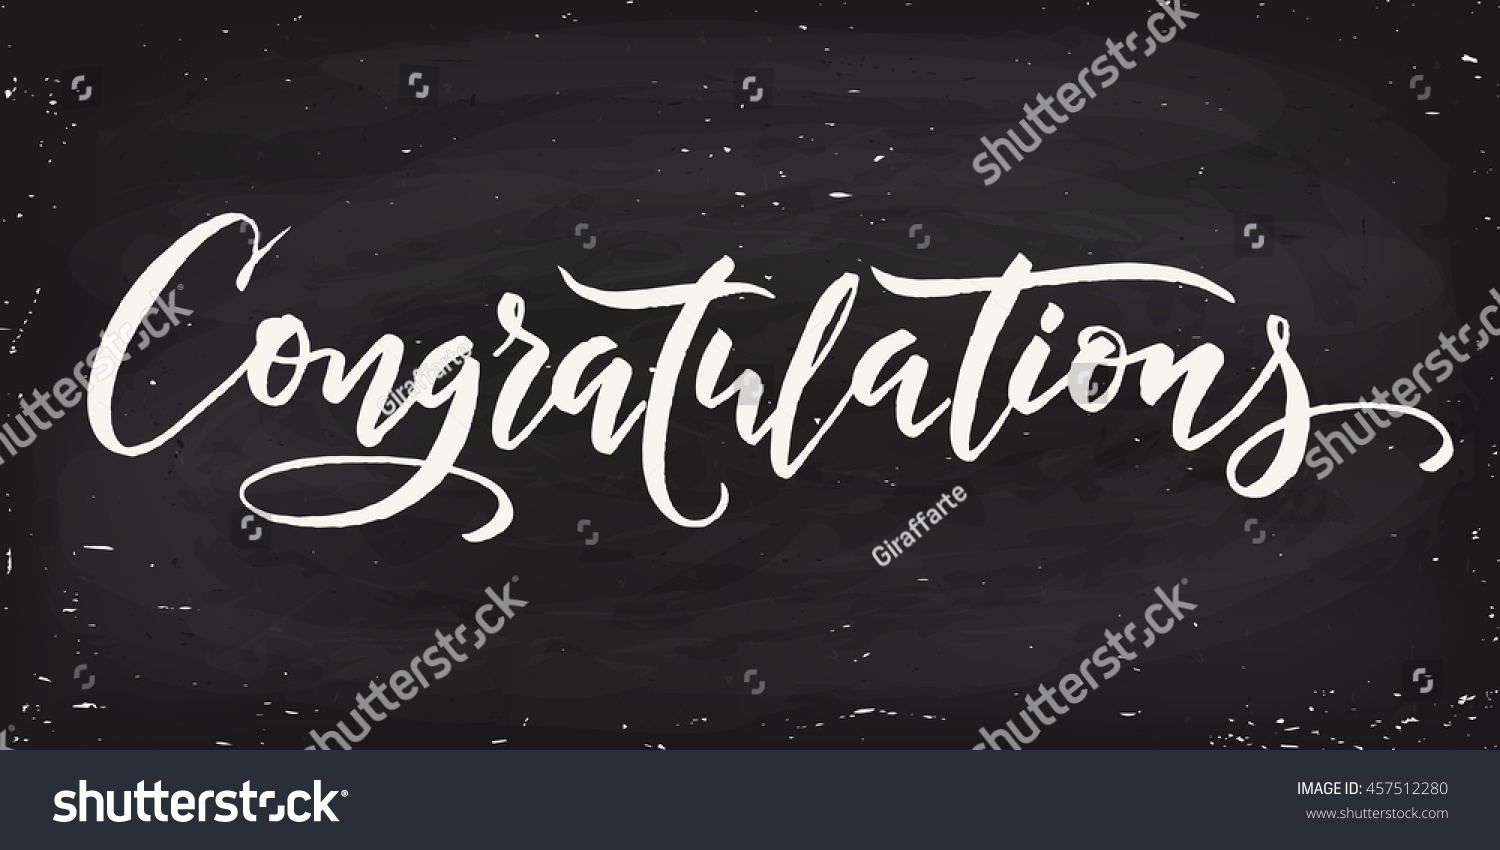 Congratulations calligraphy hand written text lettering stock